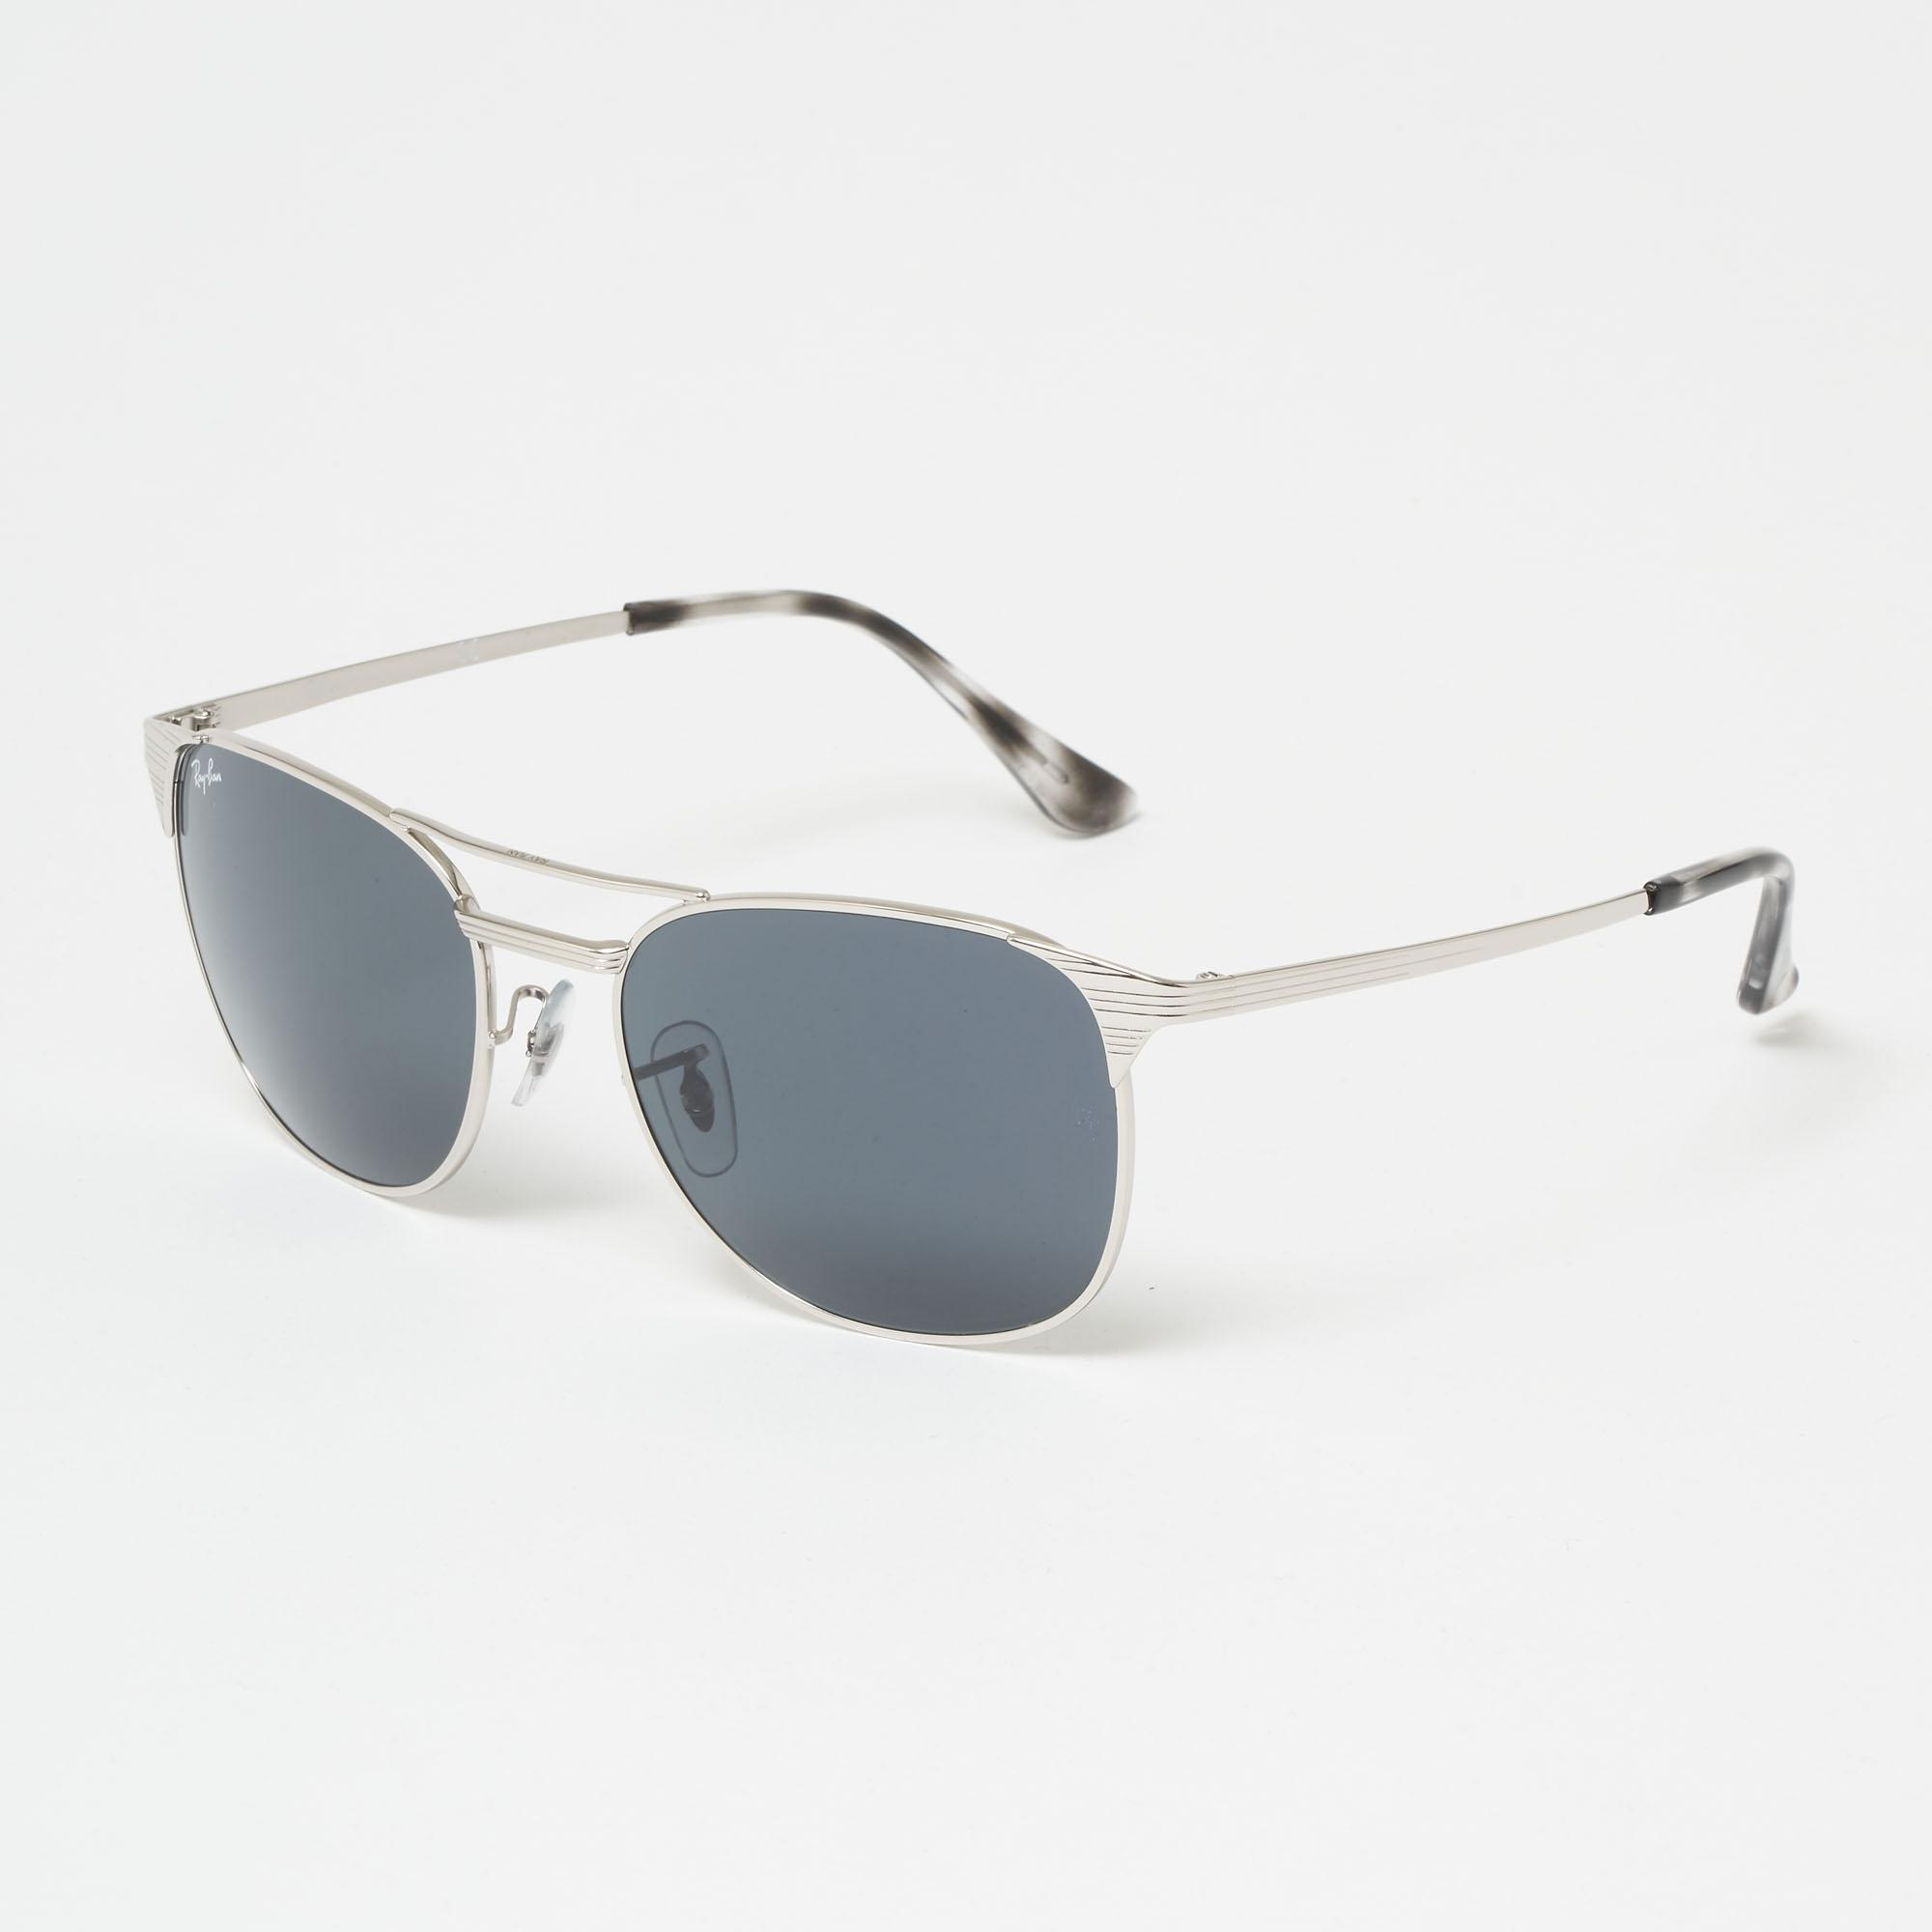 4c7ffd400e Lyst - Ray-Ban Signet Sunglasses - Blue gray Classic Lenses in Blue